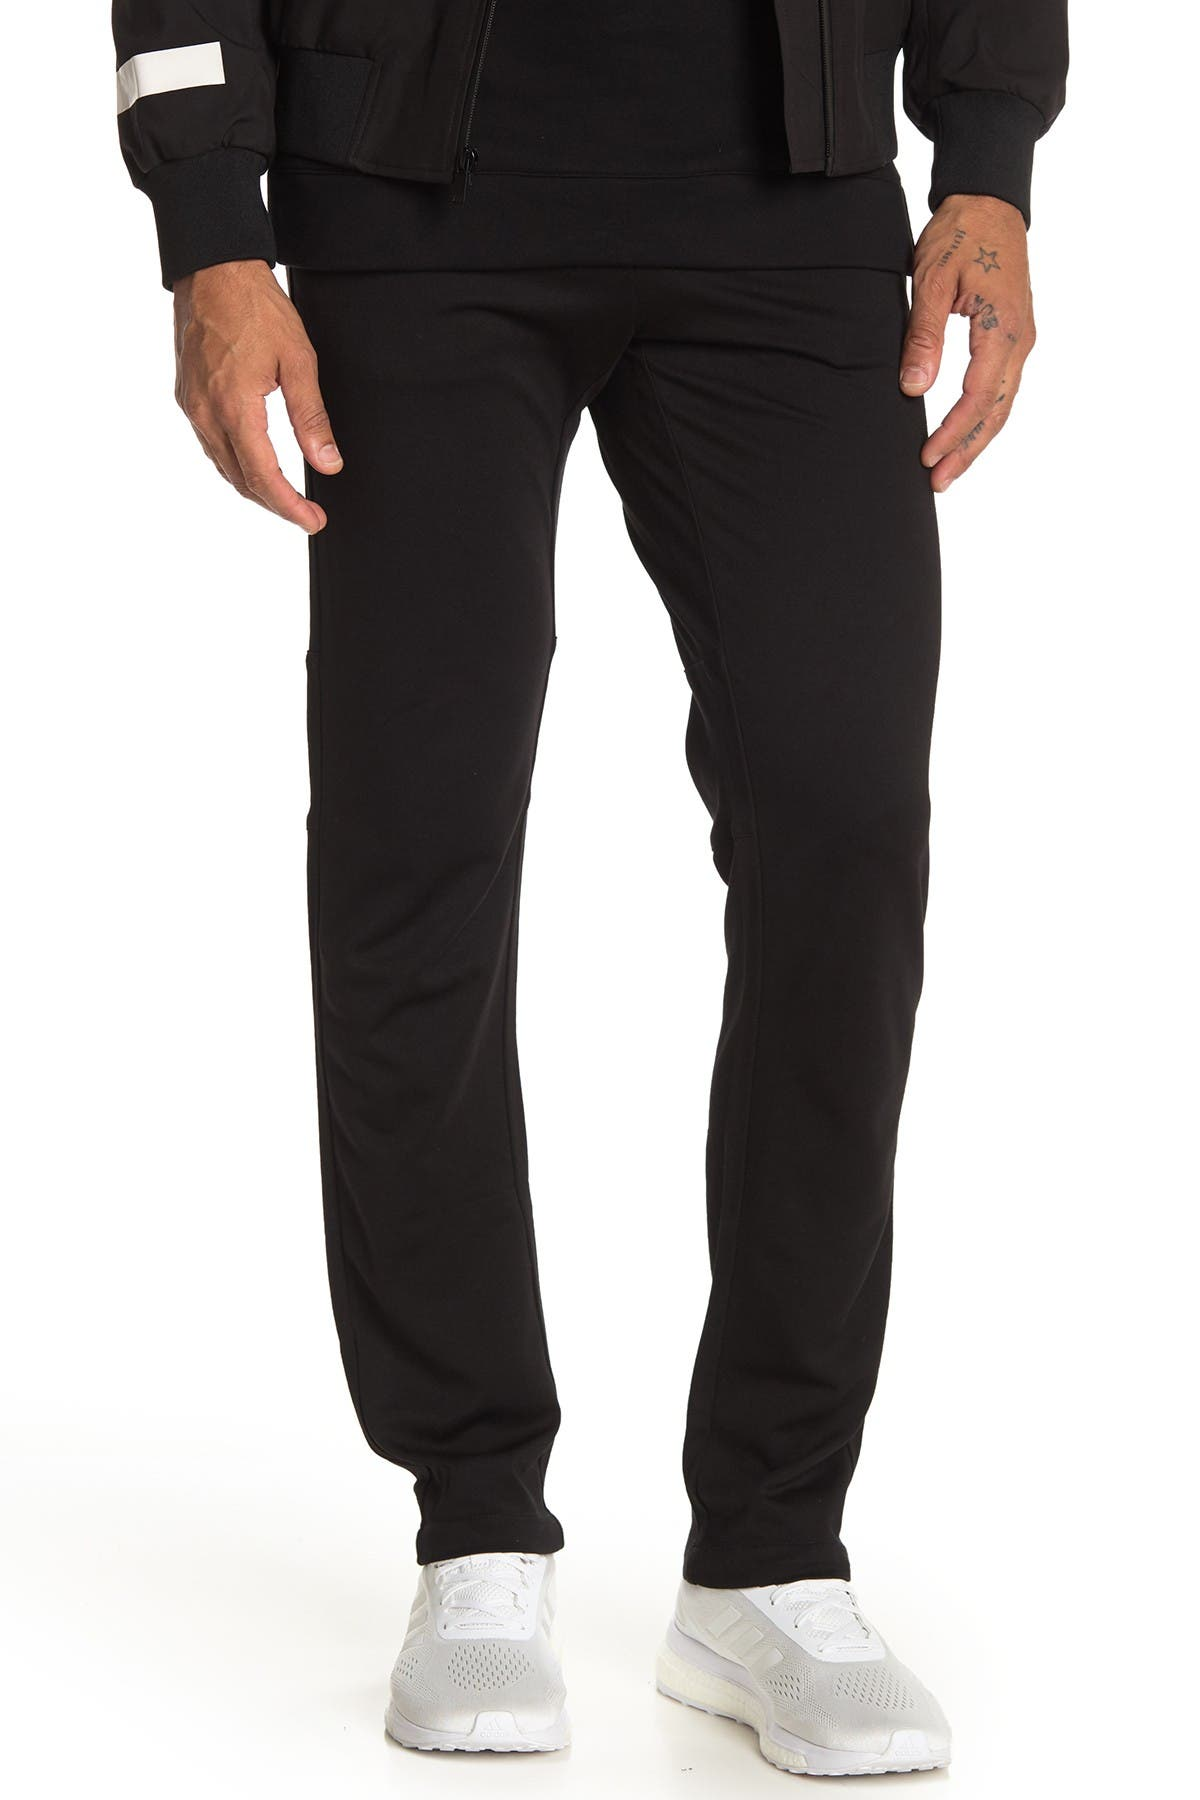 Image of RIVERSTONE No Cuff Joggers